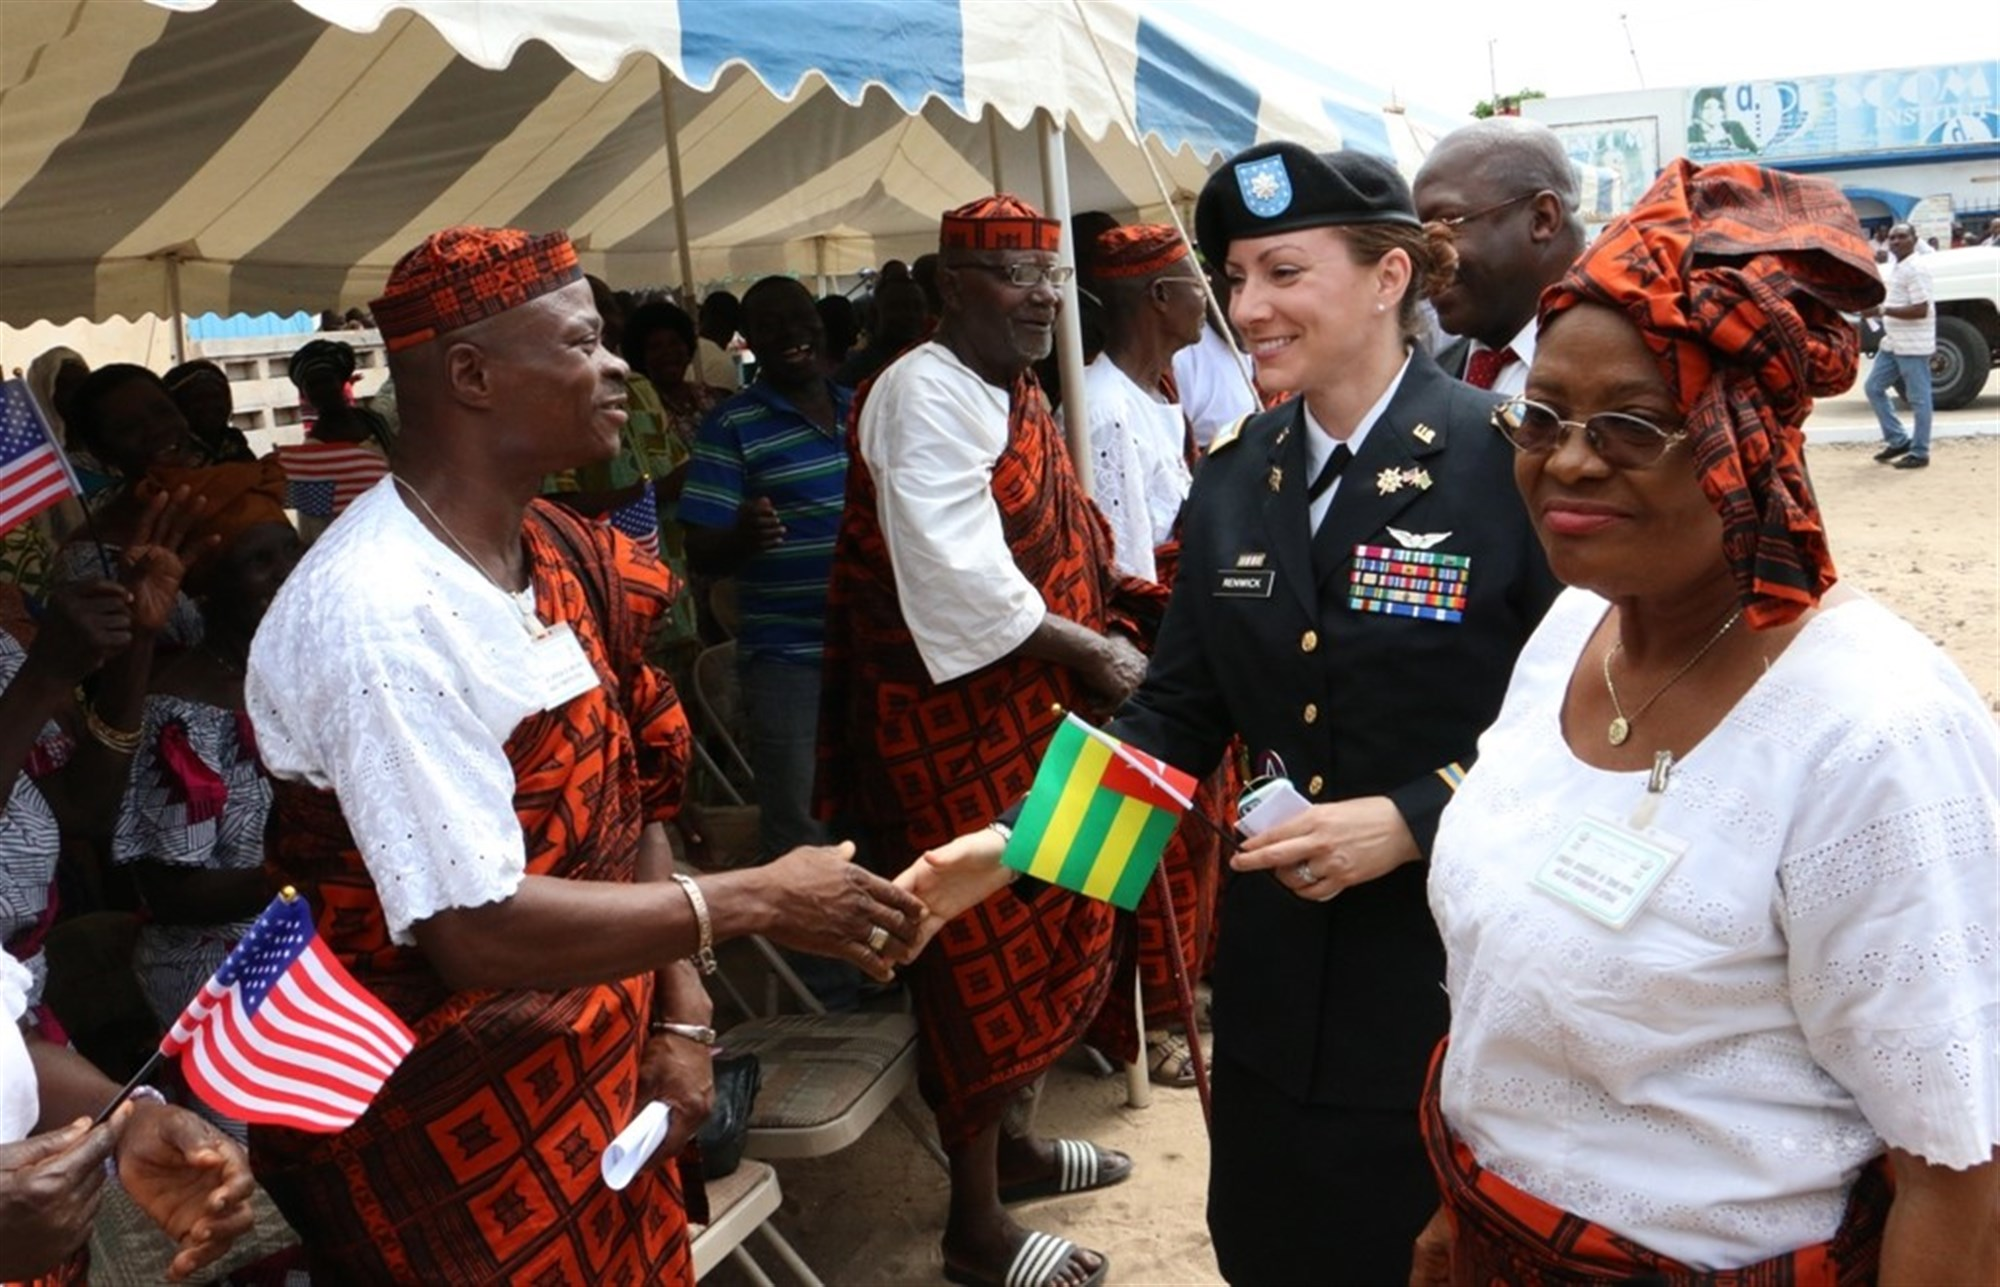 Lt. Col. Lori Renwick, manager of the AFRICOM Humanitarian and Civic Assistance Program, greets community leaders during a ribbon cutting ceremony for a healthcare facility in Lomé, Togo May 26, 2015. Photo taken by Elliott Agbavon, U.S. Embassy Lomé.